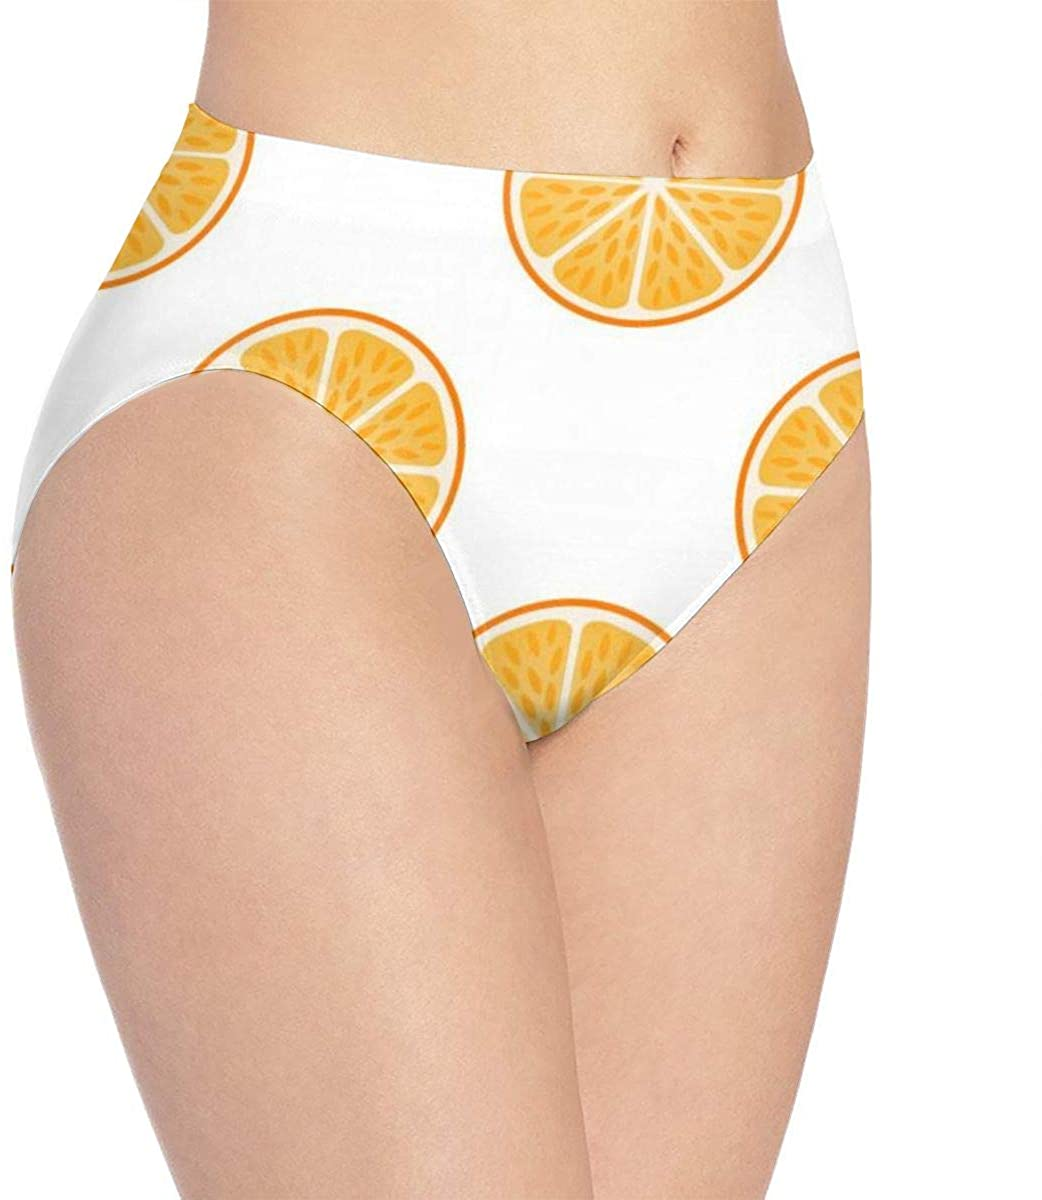 Women Underwear Fresh Orange Fruit Slices Briefs Sexy Bikini Panty